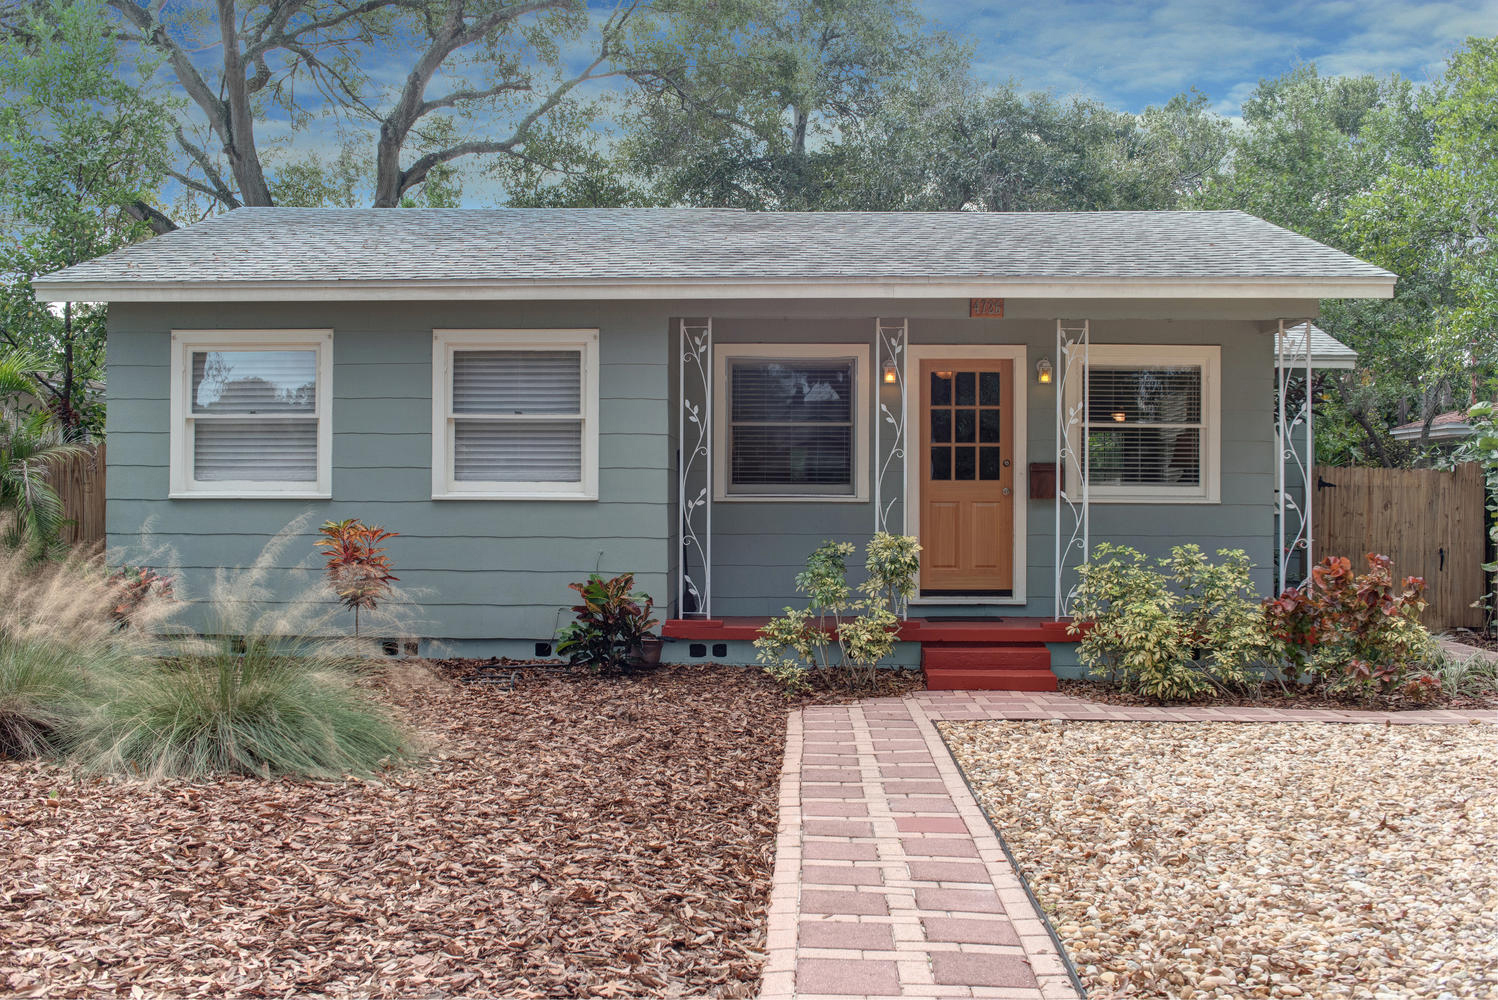 Staged cozy 1940 39 s st pete bungalow cardinal designs for 1940s homes exterior design